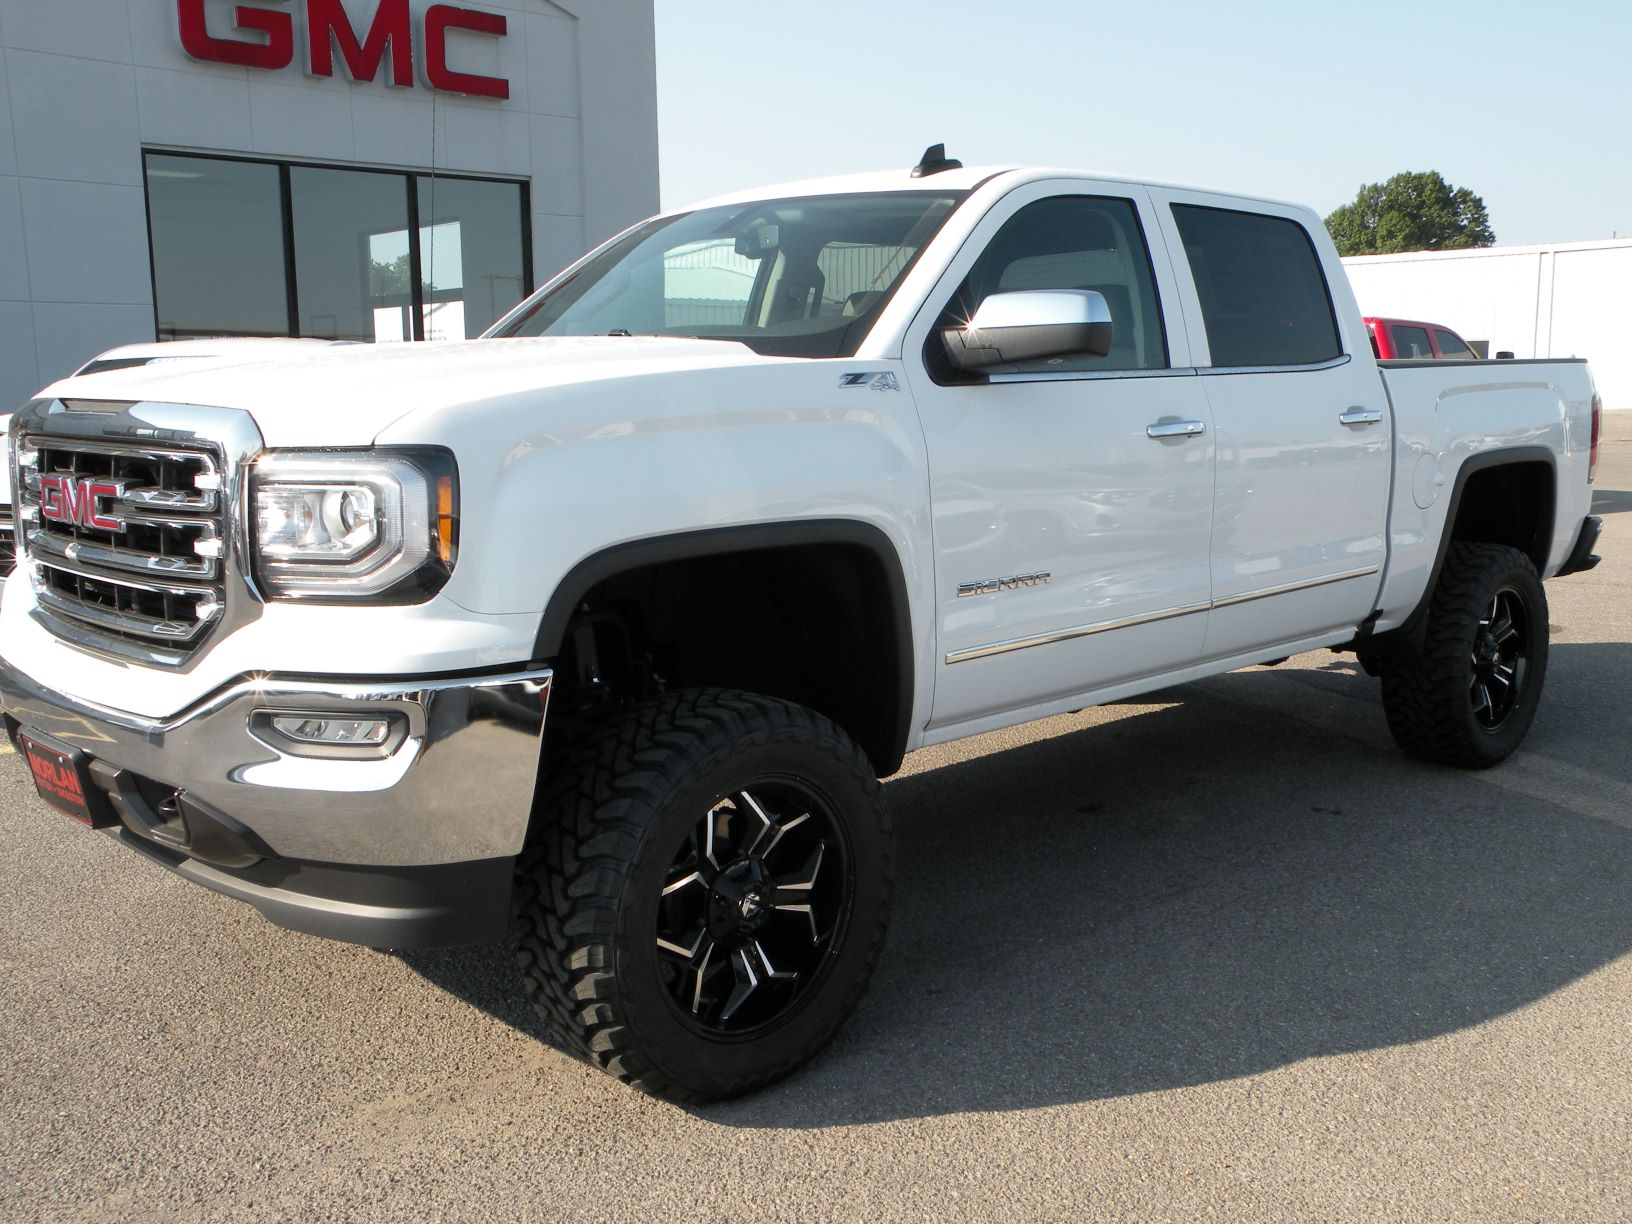 New gmc cars for sale rogee new gmc cars for sale publicscrutiny Gallery